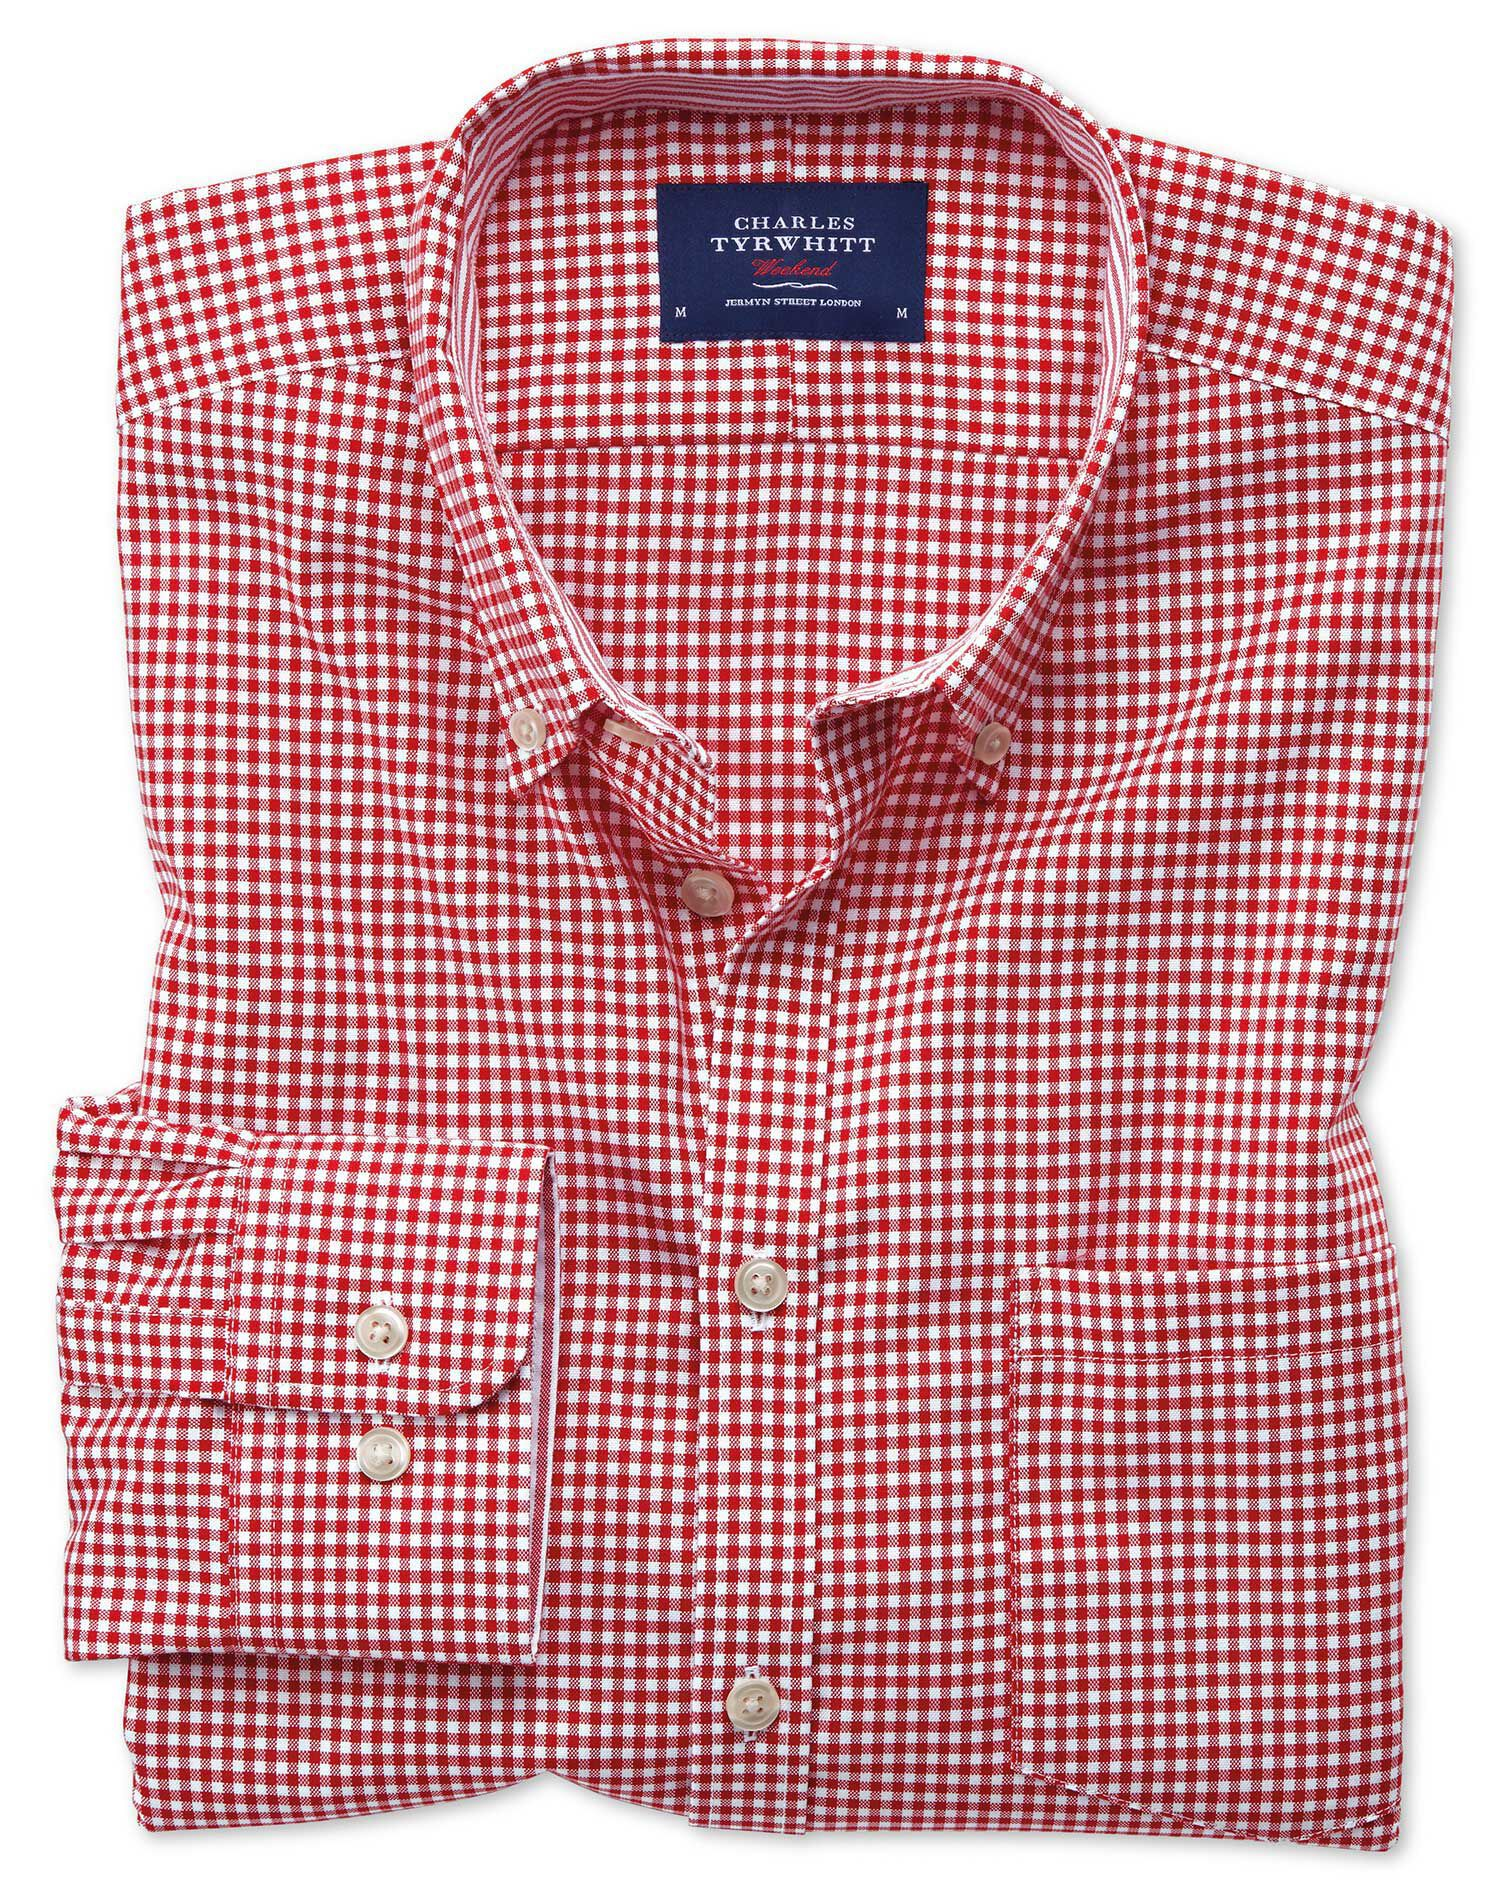 Extra Slim Fit Button-Down Non-Iron Oxford Gingham Red Cotton Shirt Single Cuff Size XS by Charles T